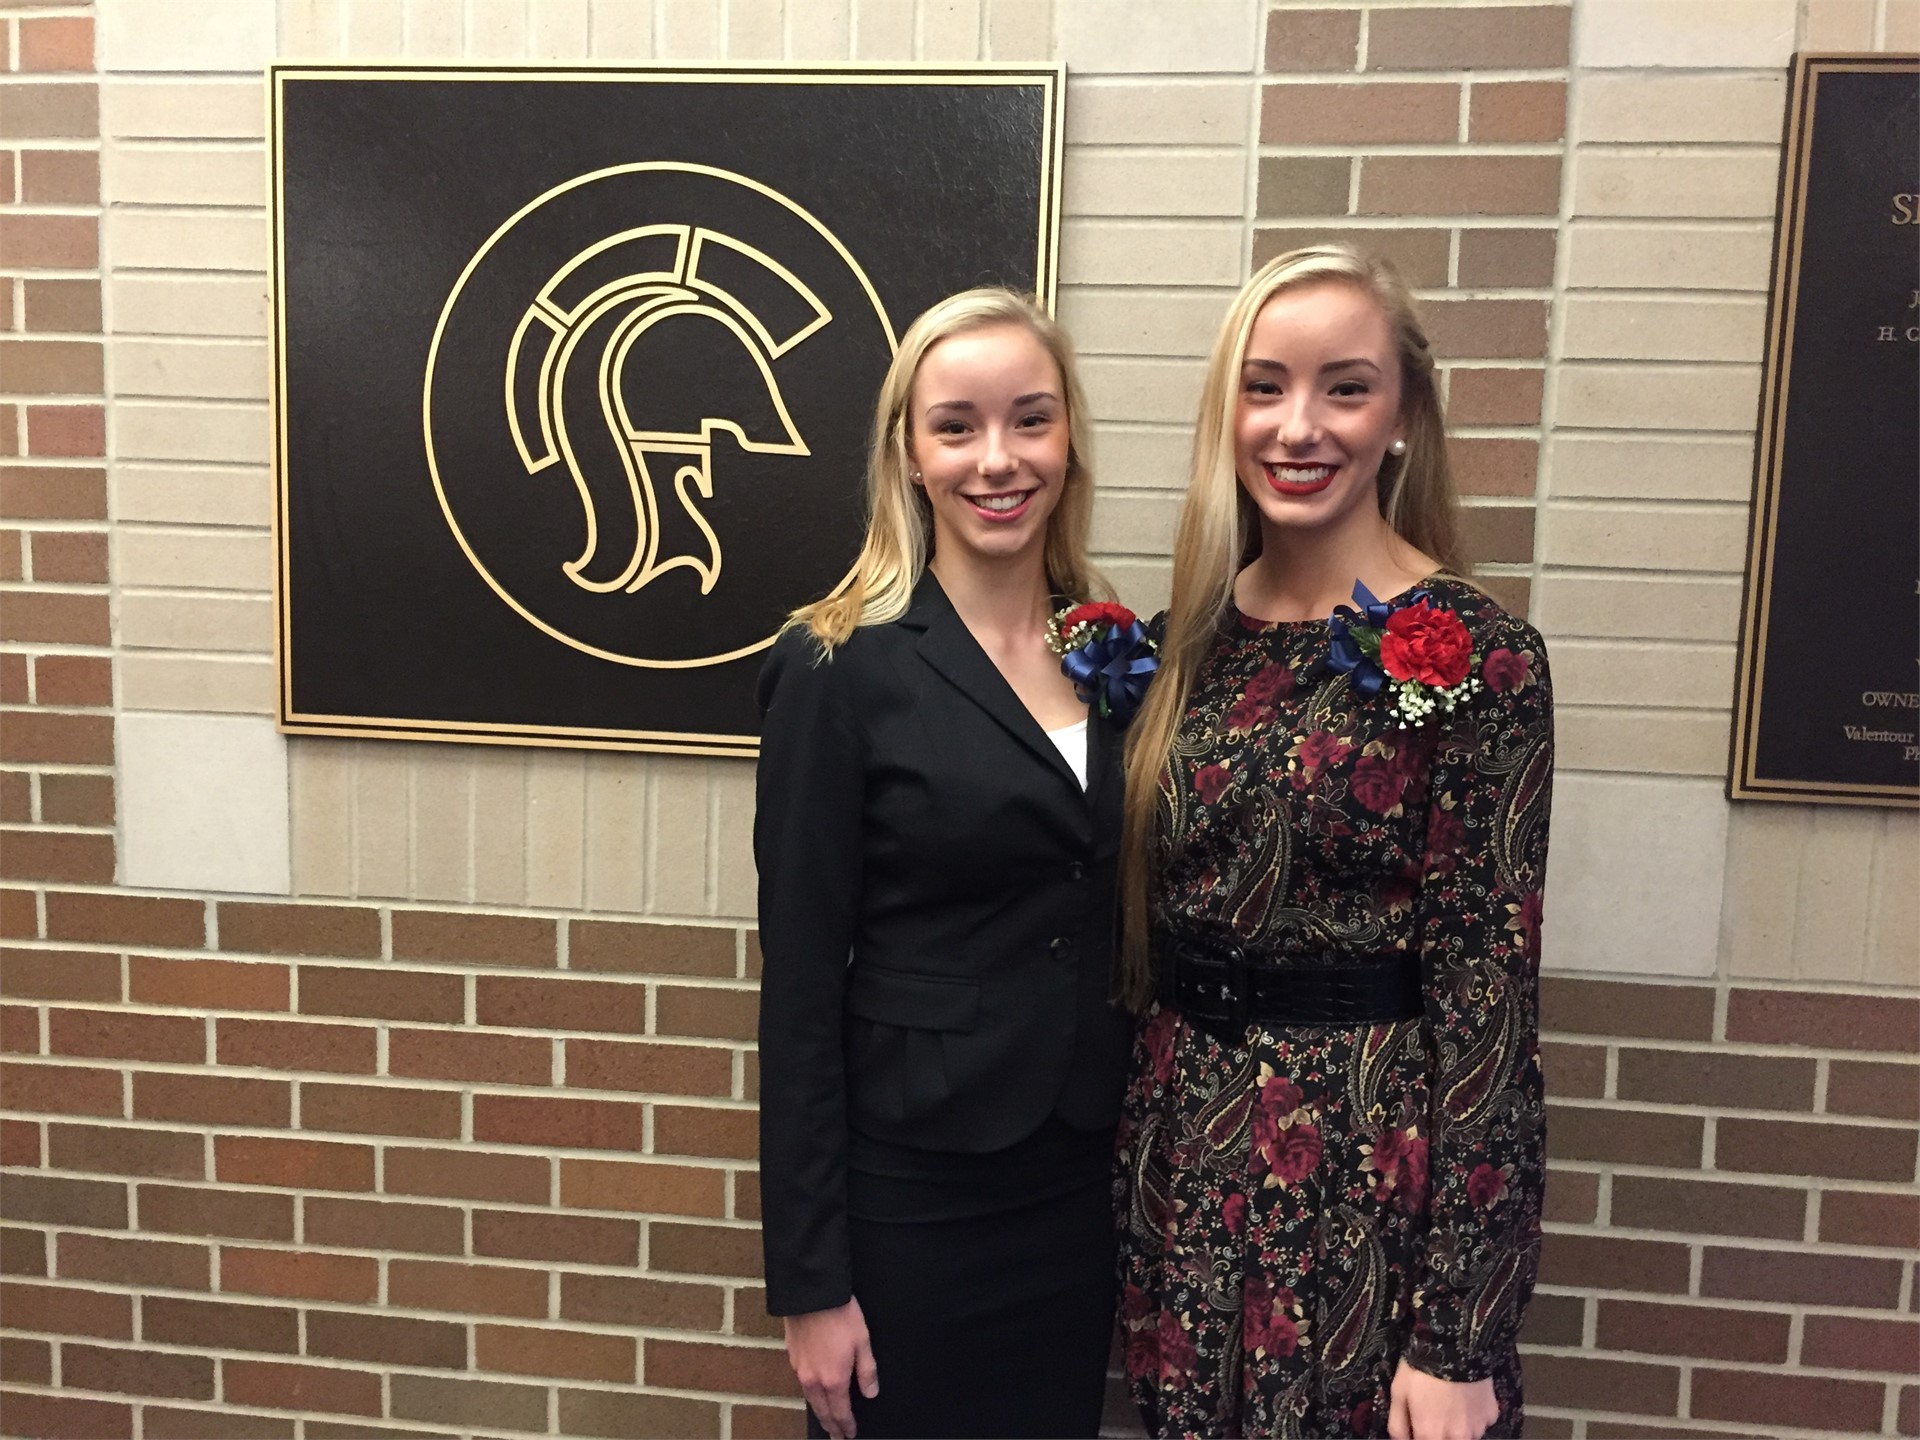 Natalie & Nicole Pilewski recipients of Bill & Sue Suit Scholarship